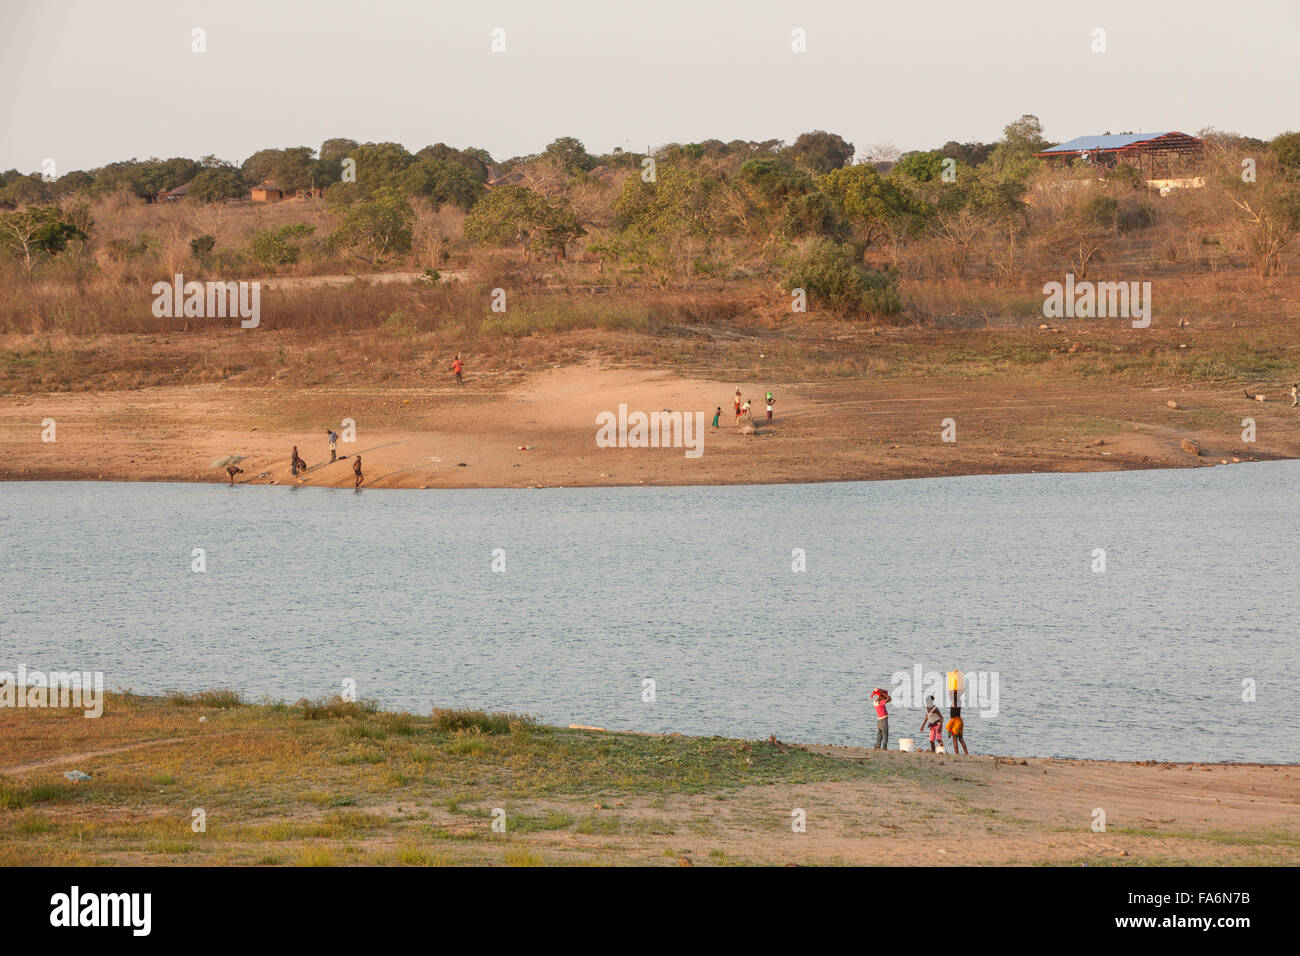 Residents draw water from the Muecula River near the Nacala Dam in Nampula Province, Mozambique. - Stock Image